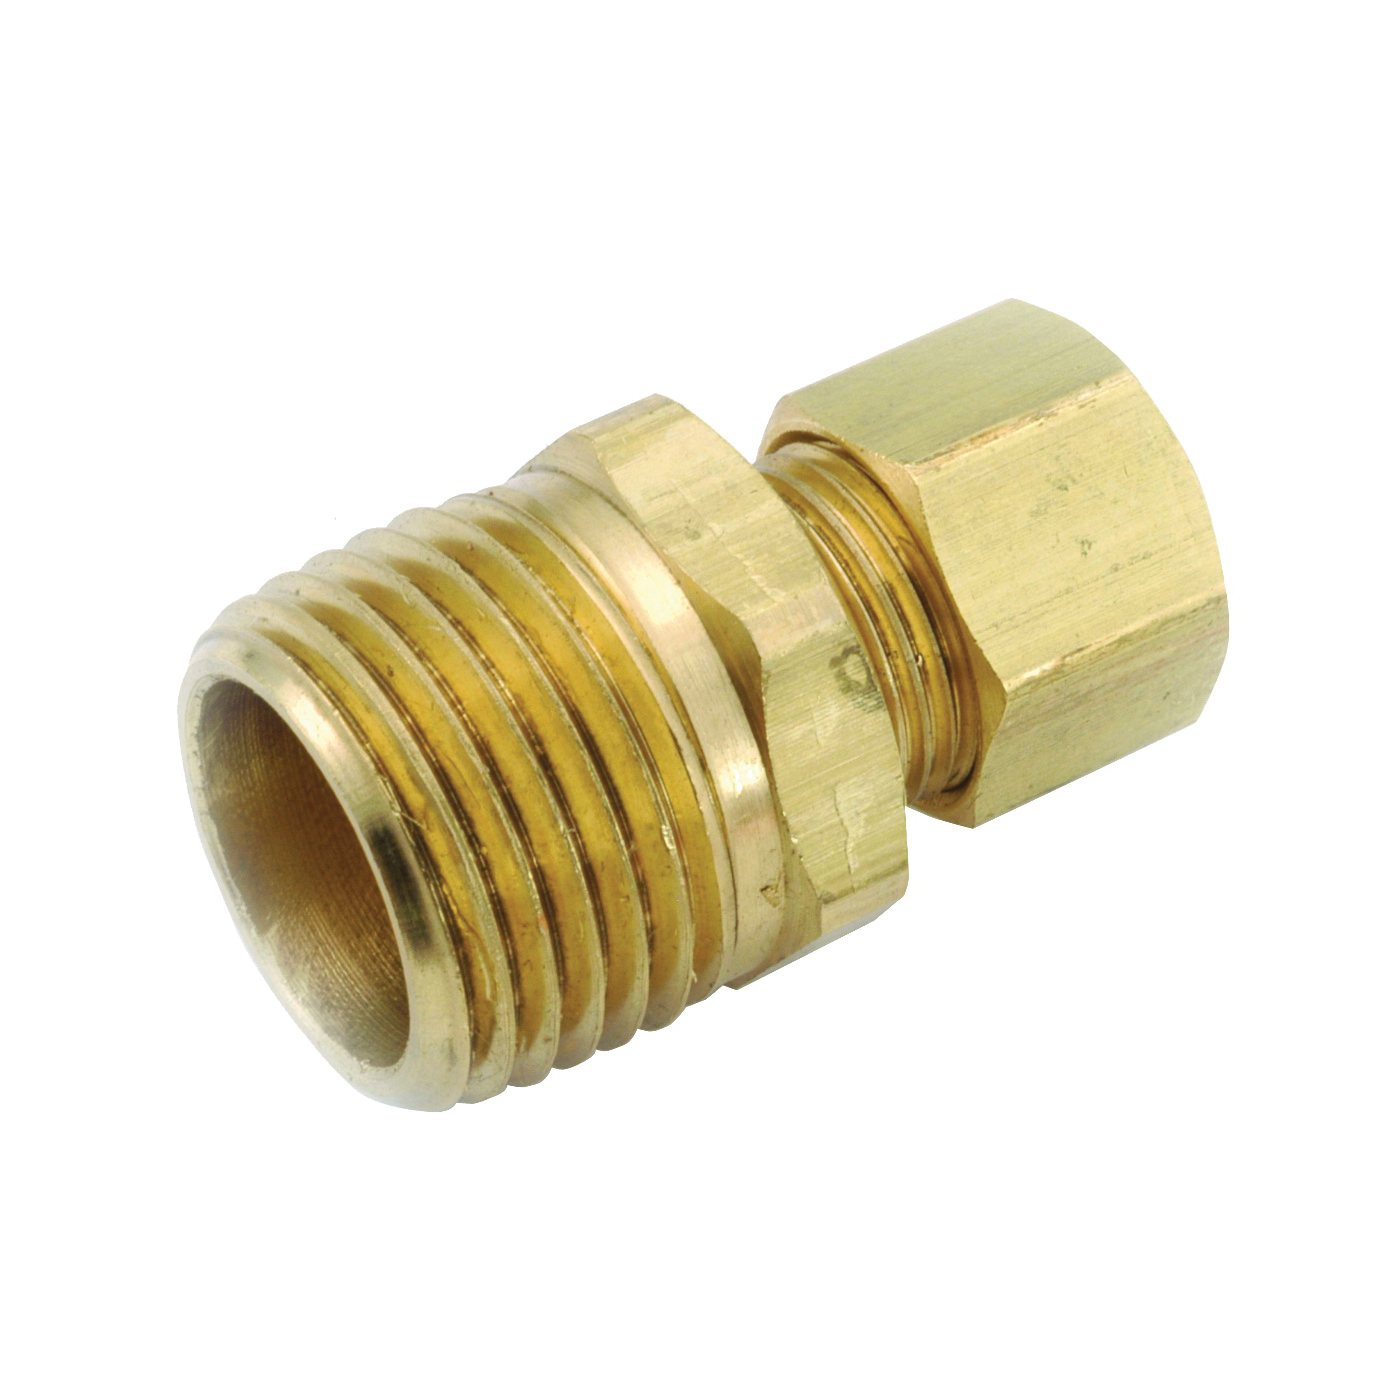 Picture of Anderson Metals 750068-0408 Connector, 1/4 in Compression, 1/2 in MPT